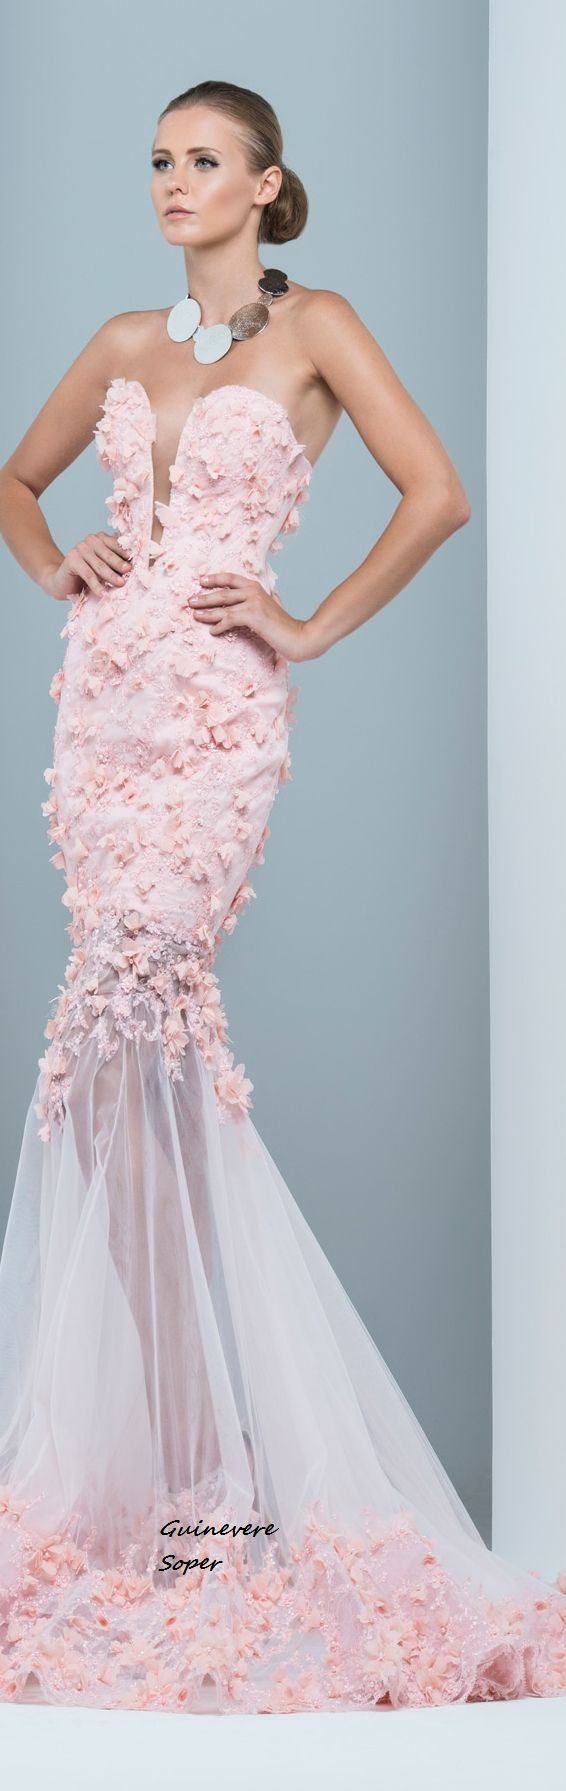 70 best Marwan & Khaled Couture images on Pinterest | Wedding frocks ...